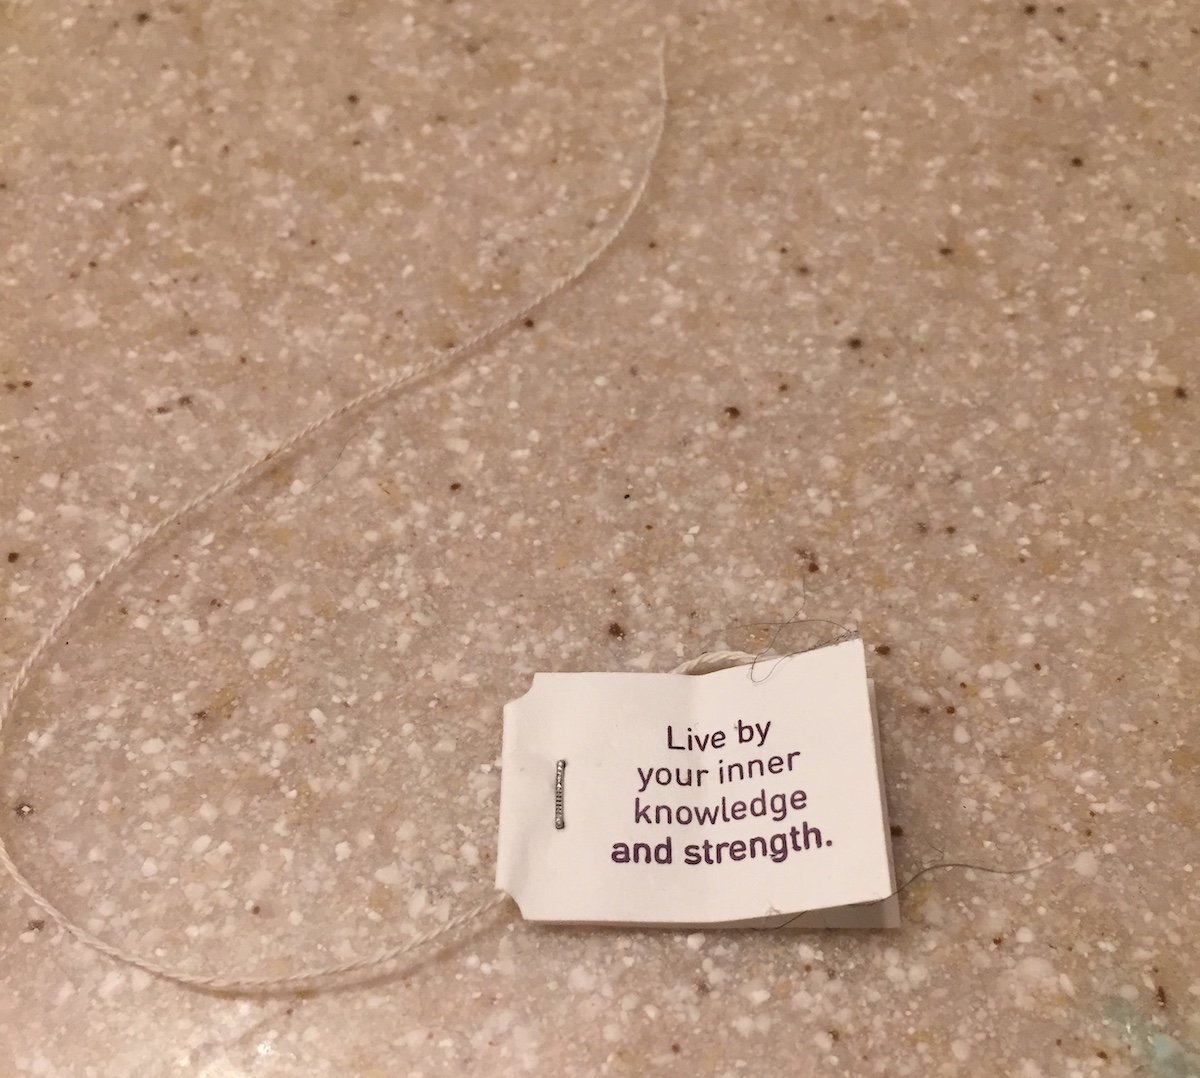 Live by your inner knowledge and strength message from a fortune